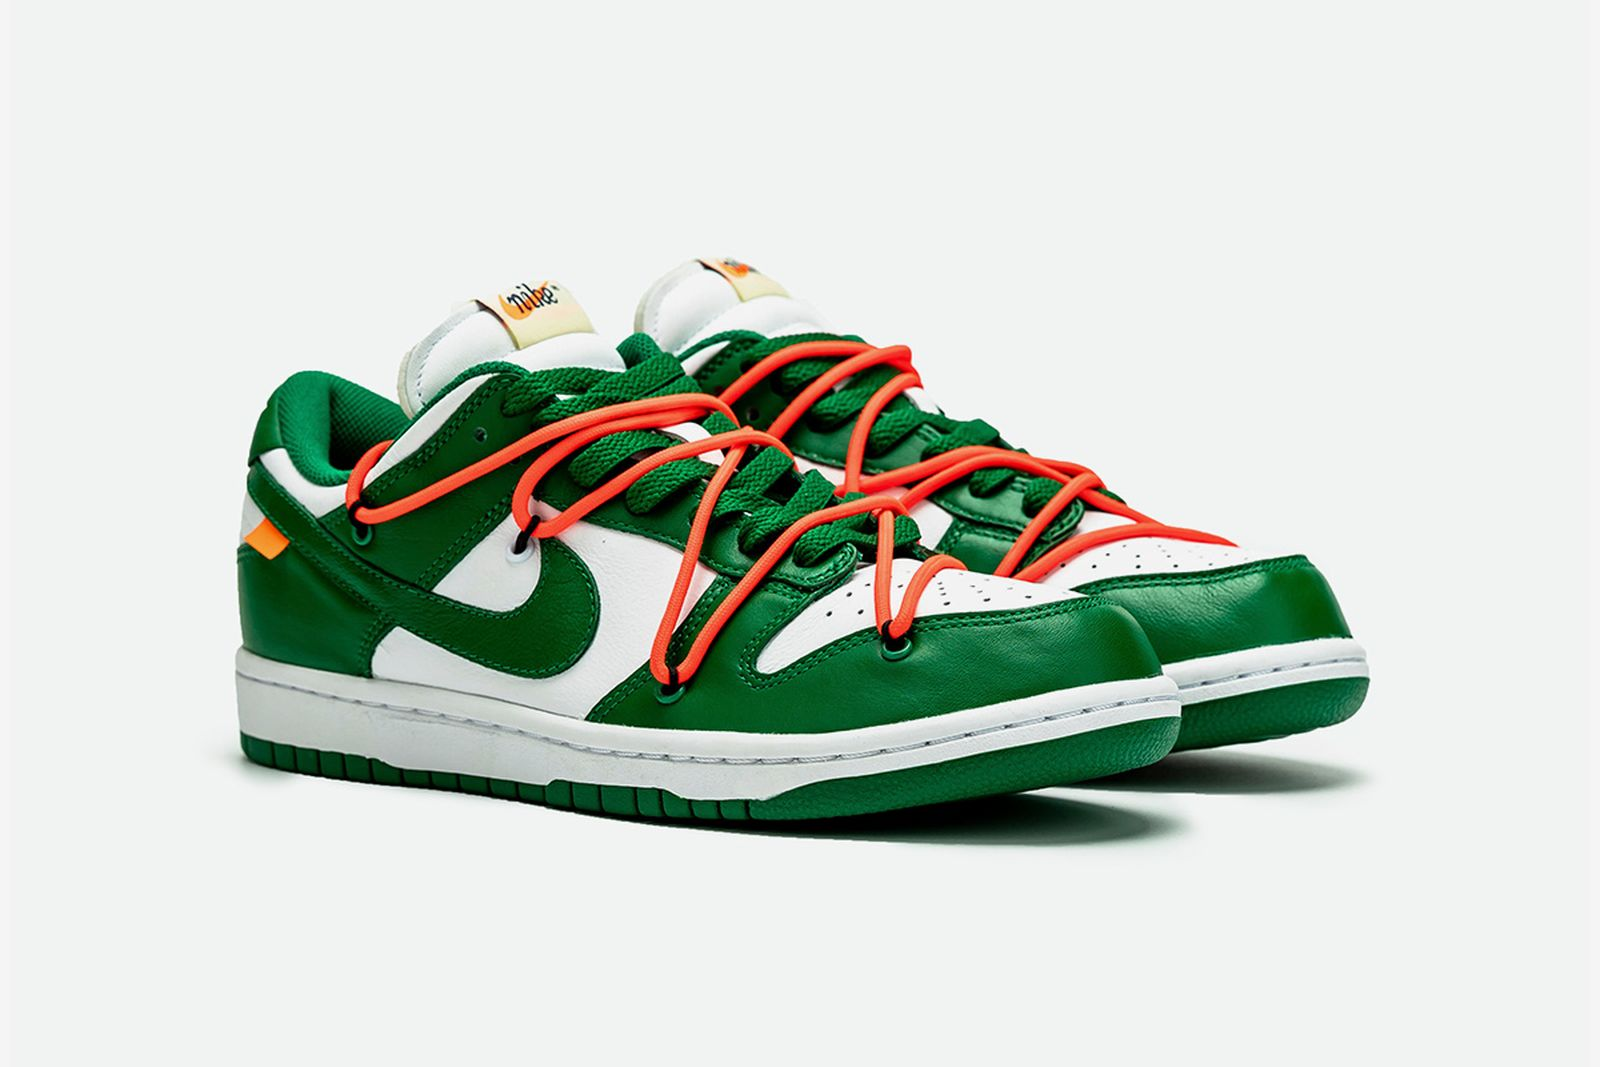 off white nike dunk low green release date price OFF-WHITE c/o Virgil Abloh